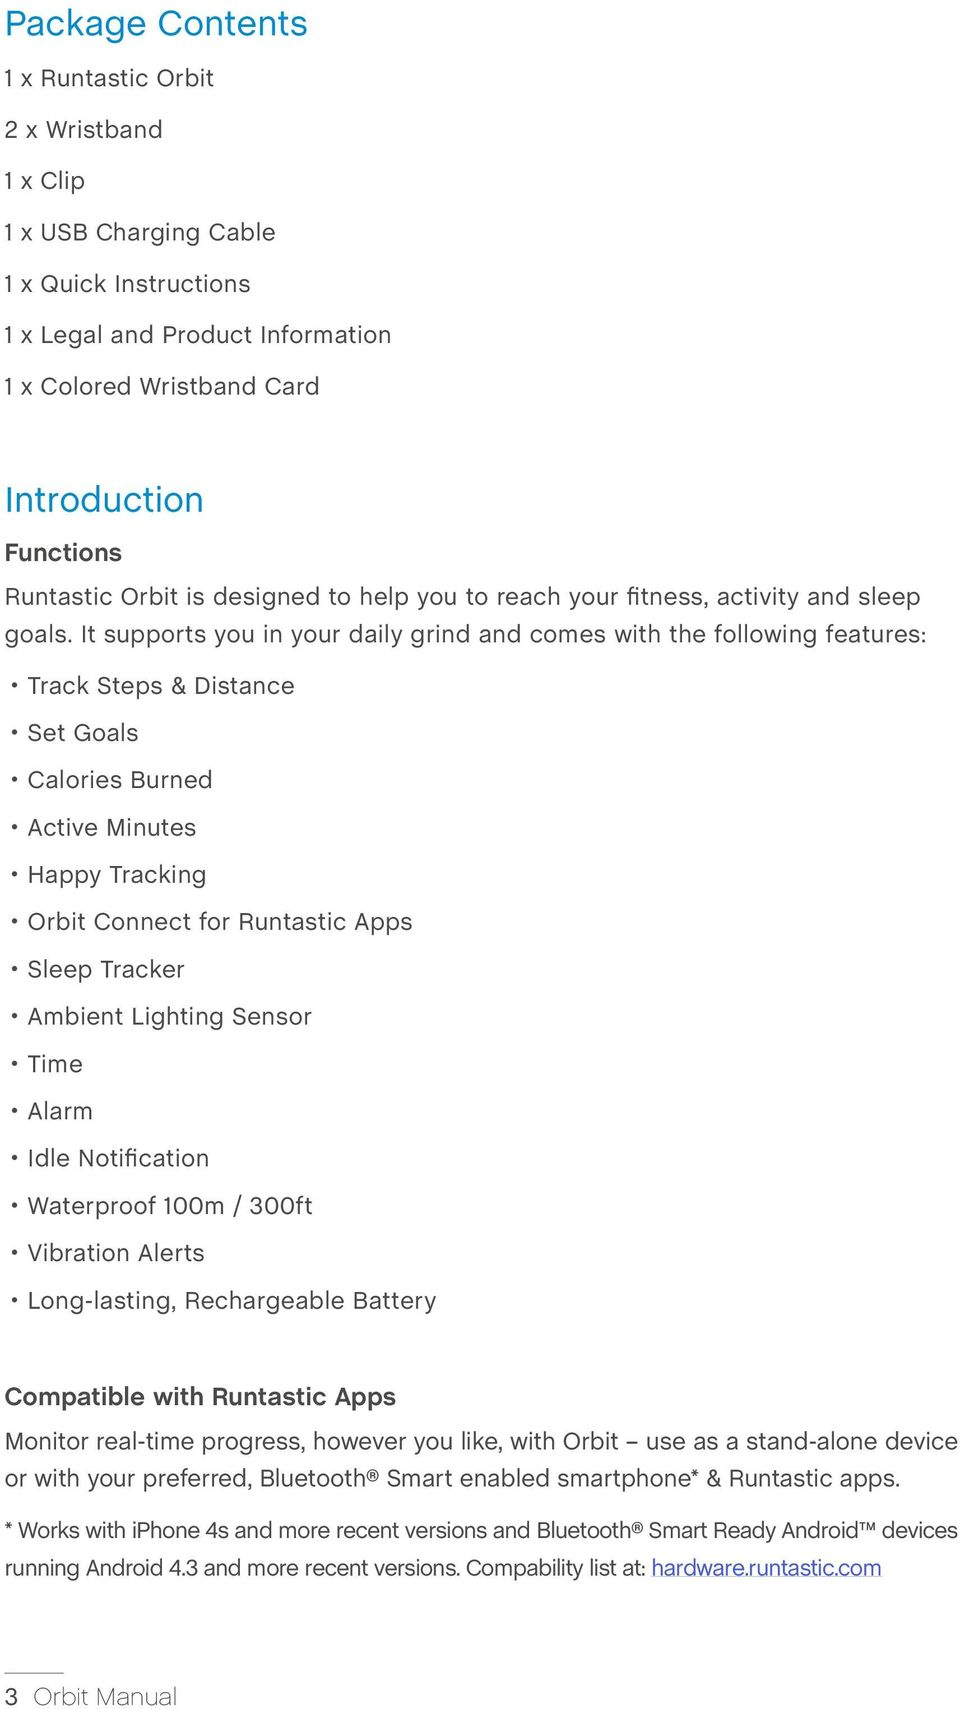 5b37922d7326 It supports you in your daily grind and comes with the following features   Track Steps